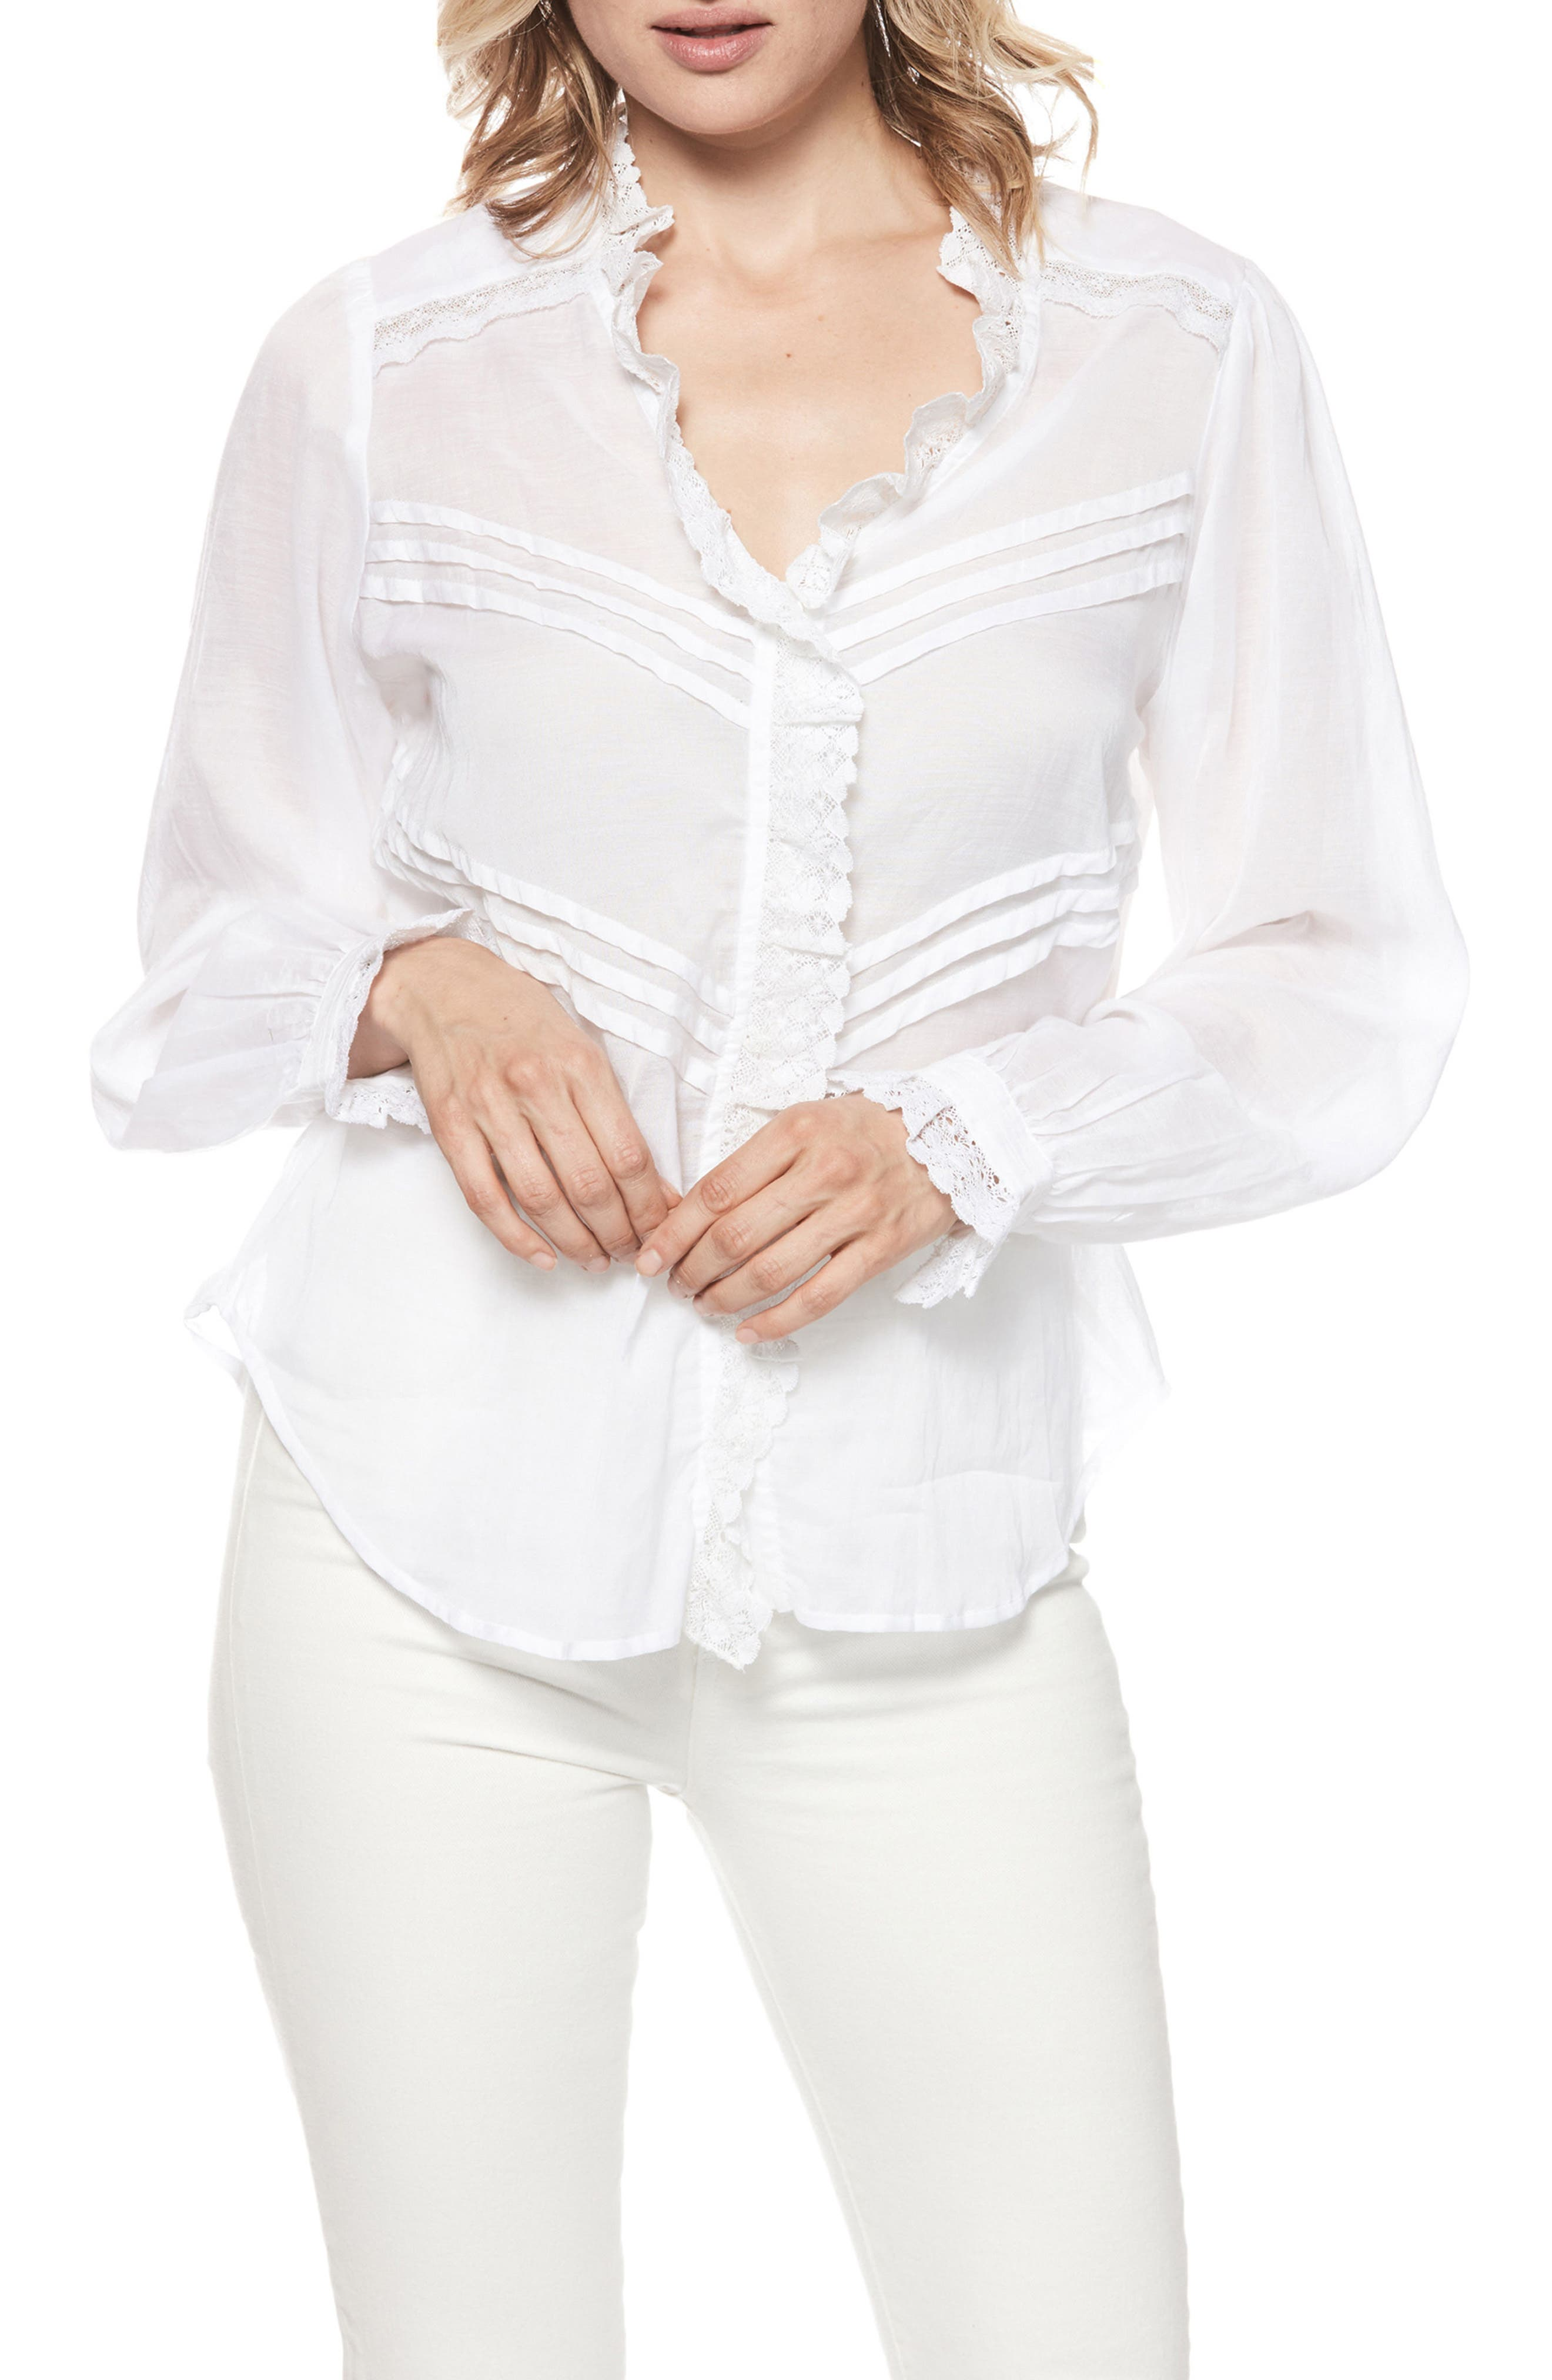 Alina Lace Trim Blouse,                             Main thumbnail 1, color,                             100